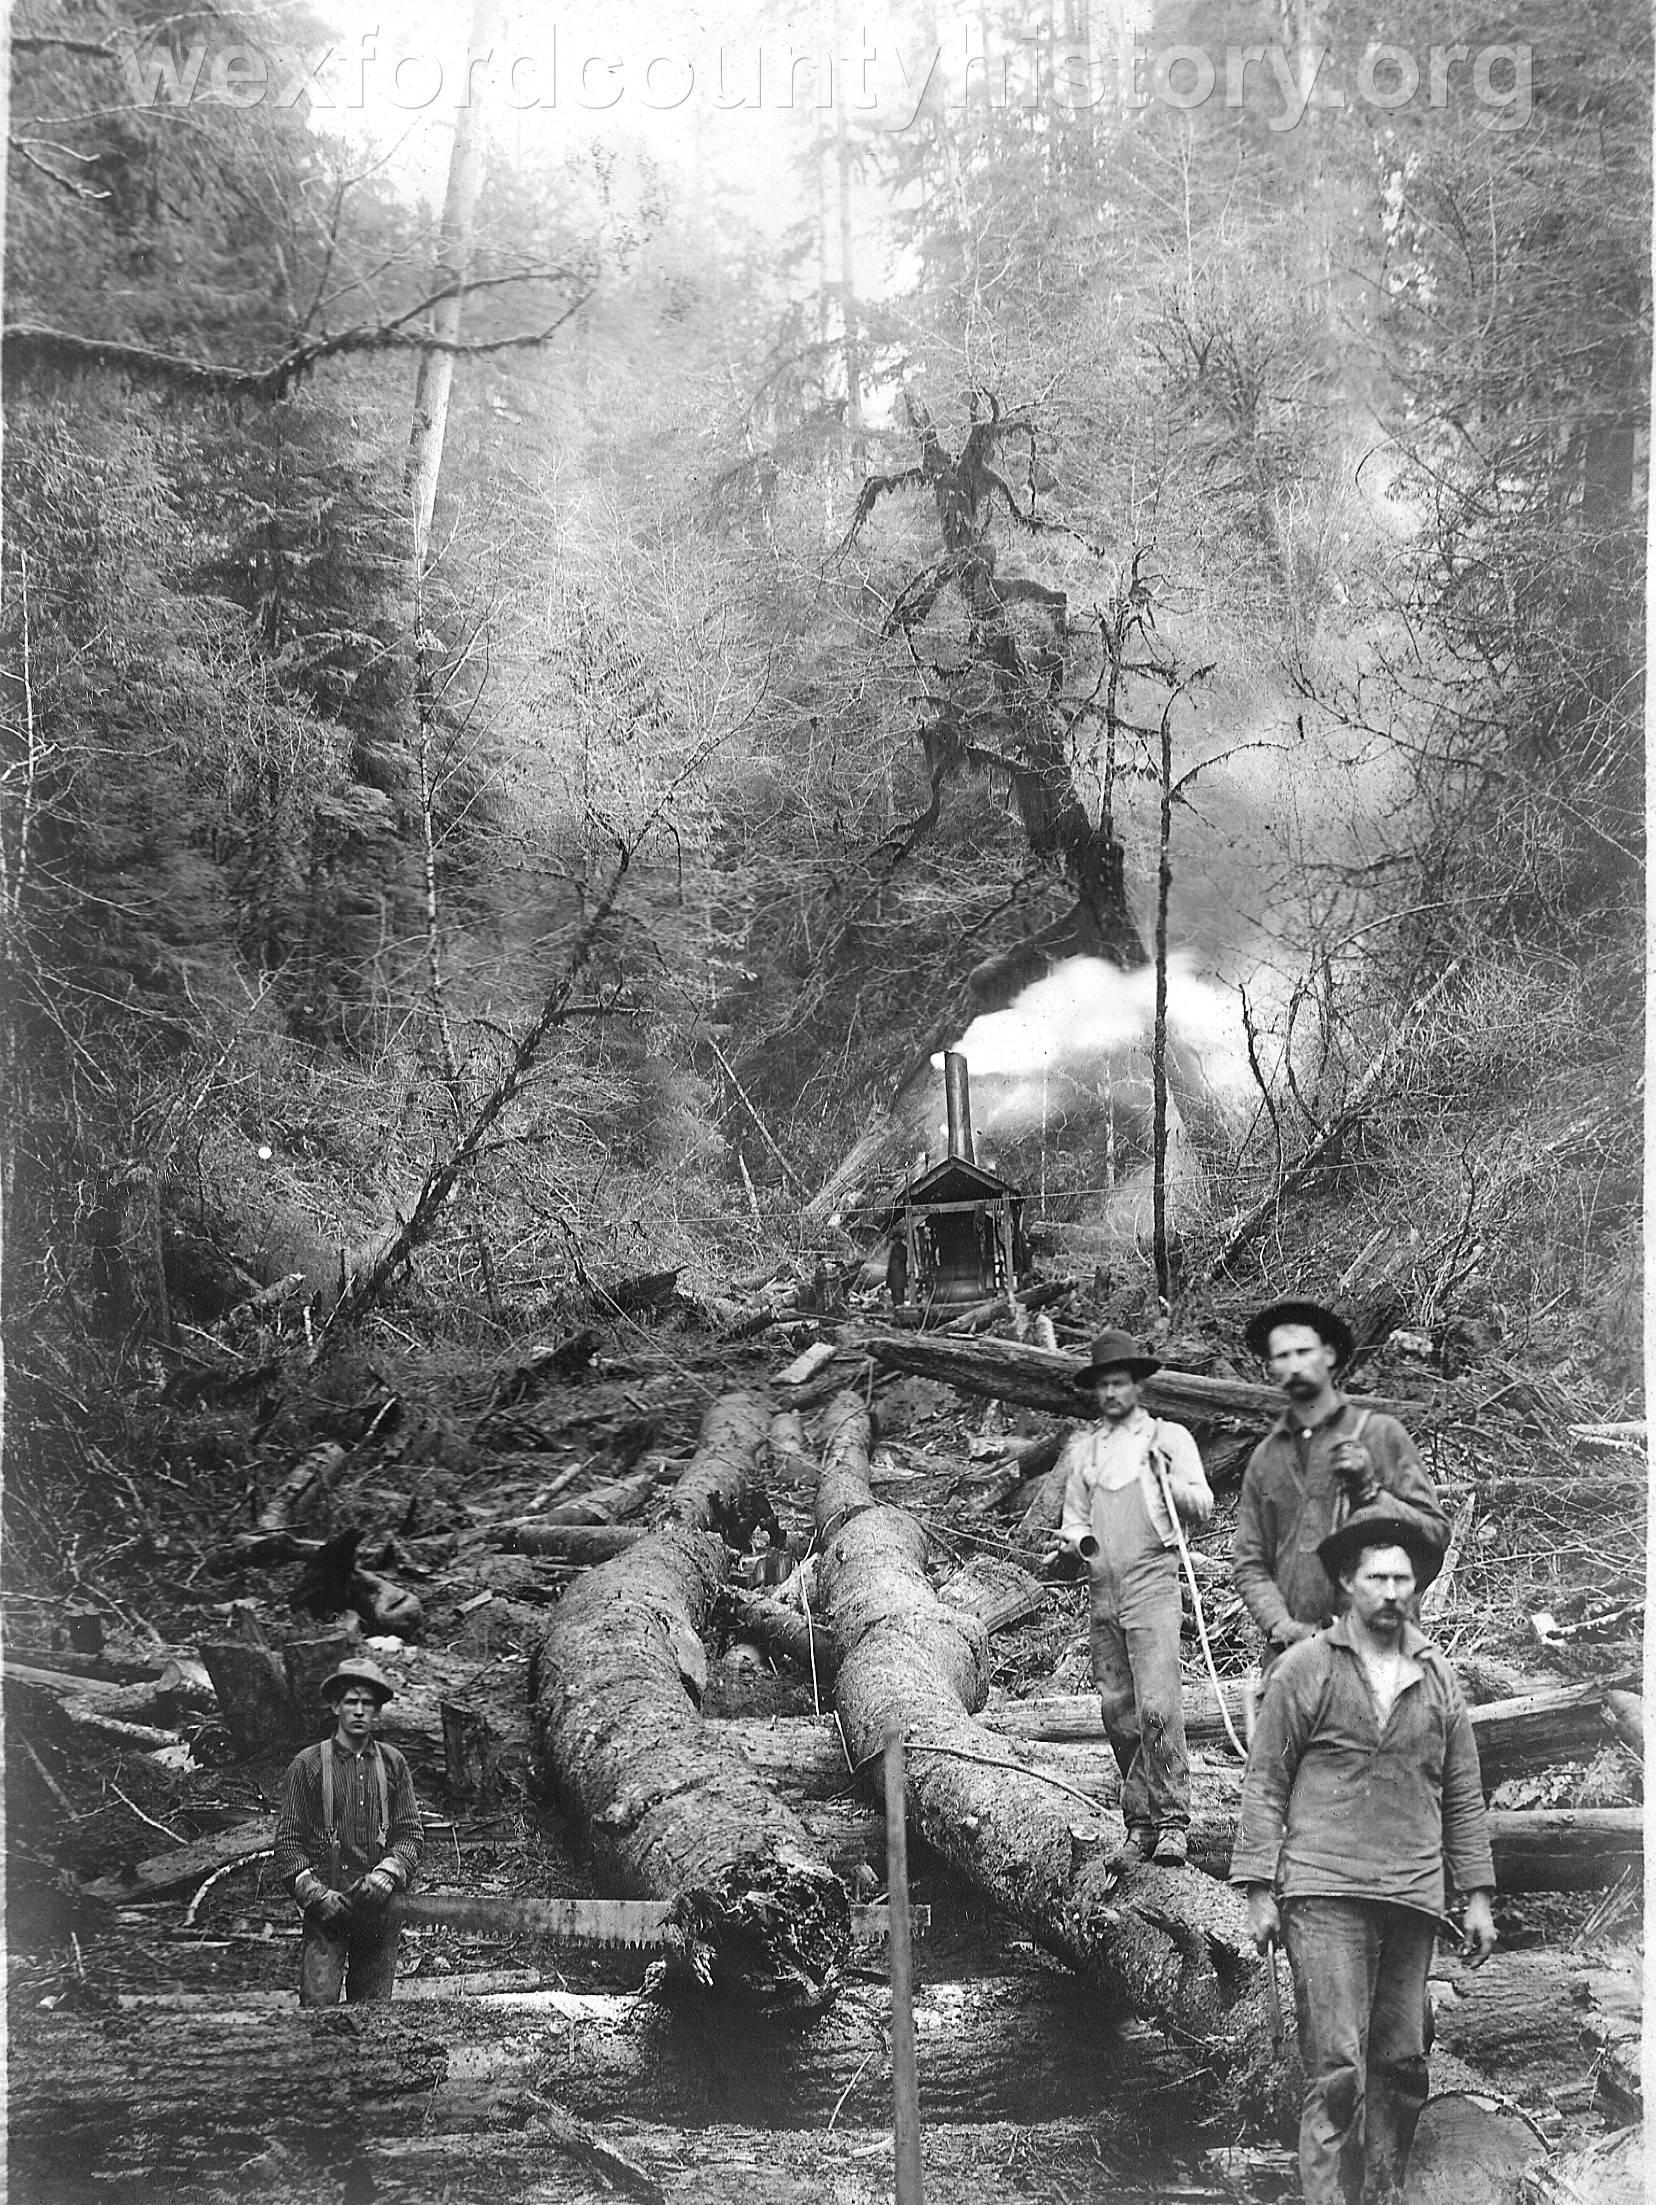 Wexford-County-Lumber-Timber-Harvest-Circa-1890s-5